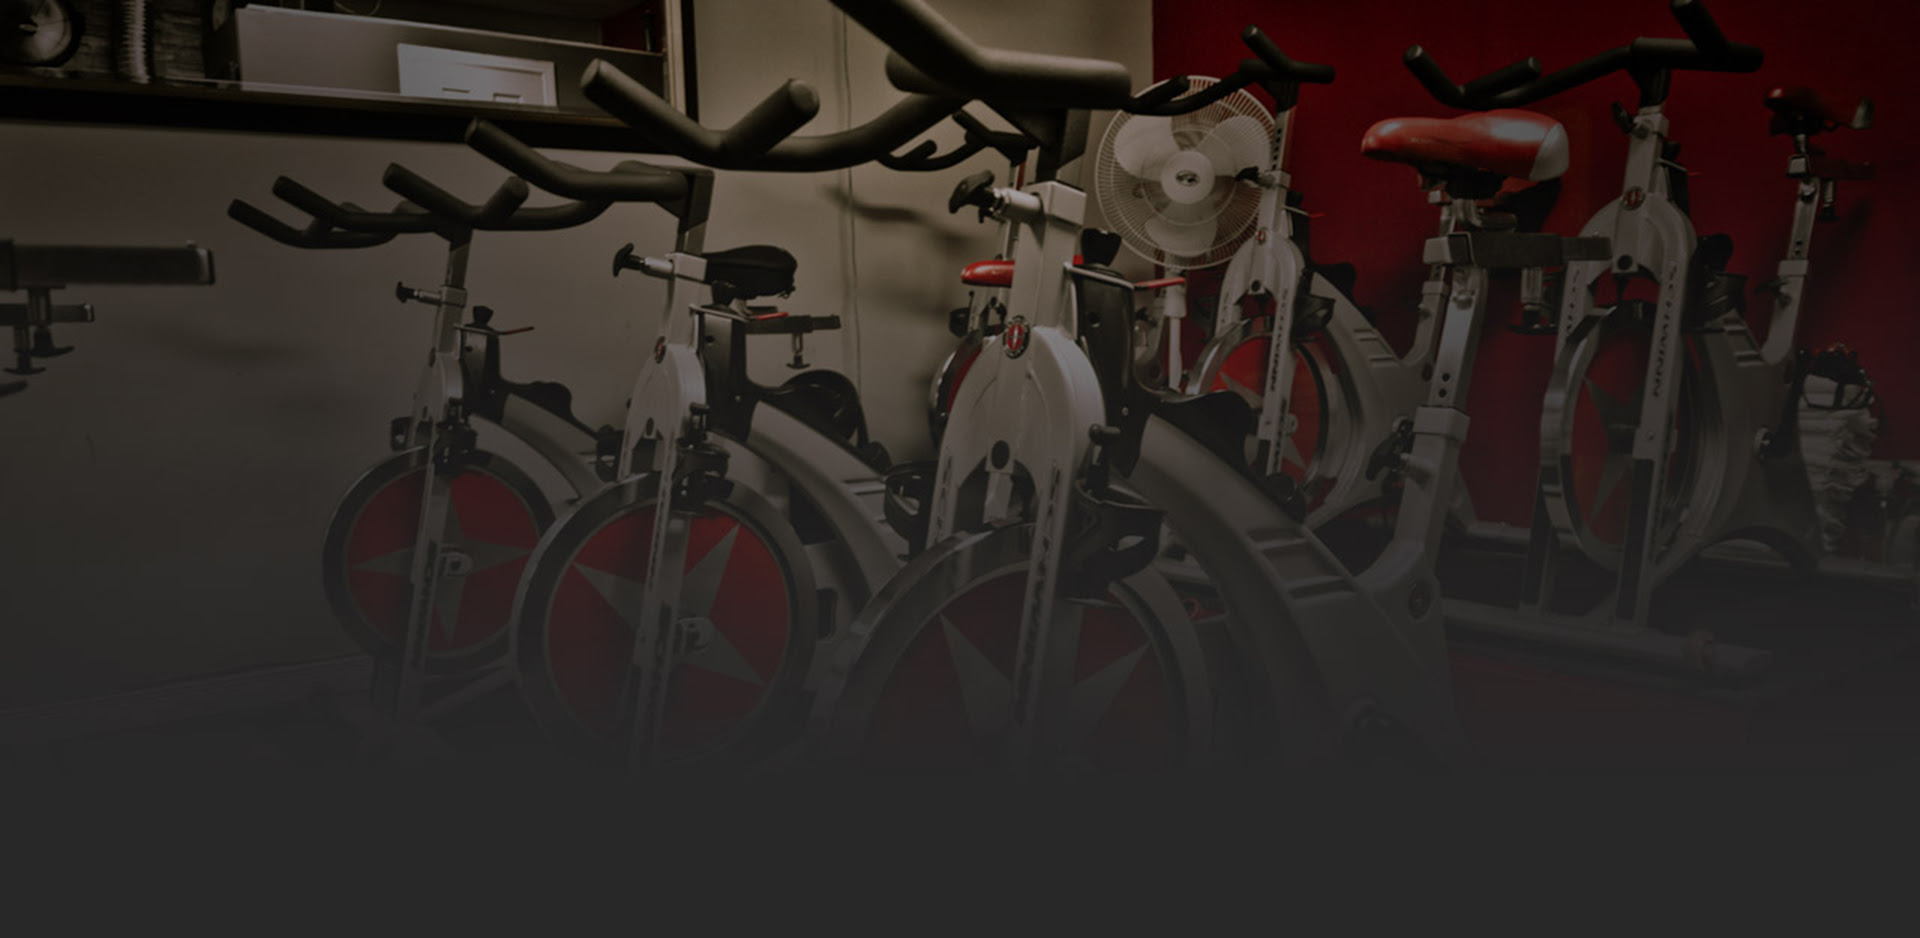 Legacy Indoor Cycling Legacy Indoor Cycling Studio Indoor Cycling Personal Training Running Groups The Newest Indoor Cycling Studio In Torontos East Side